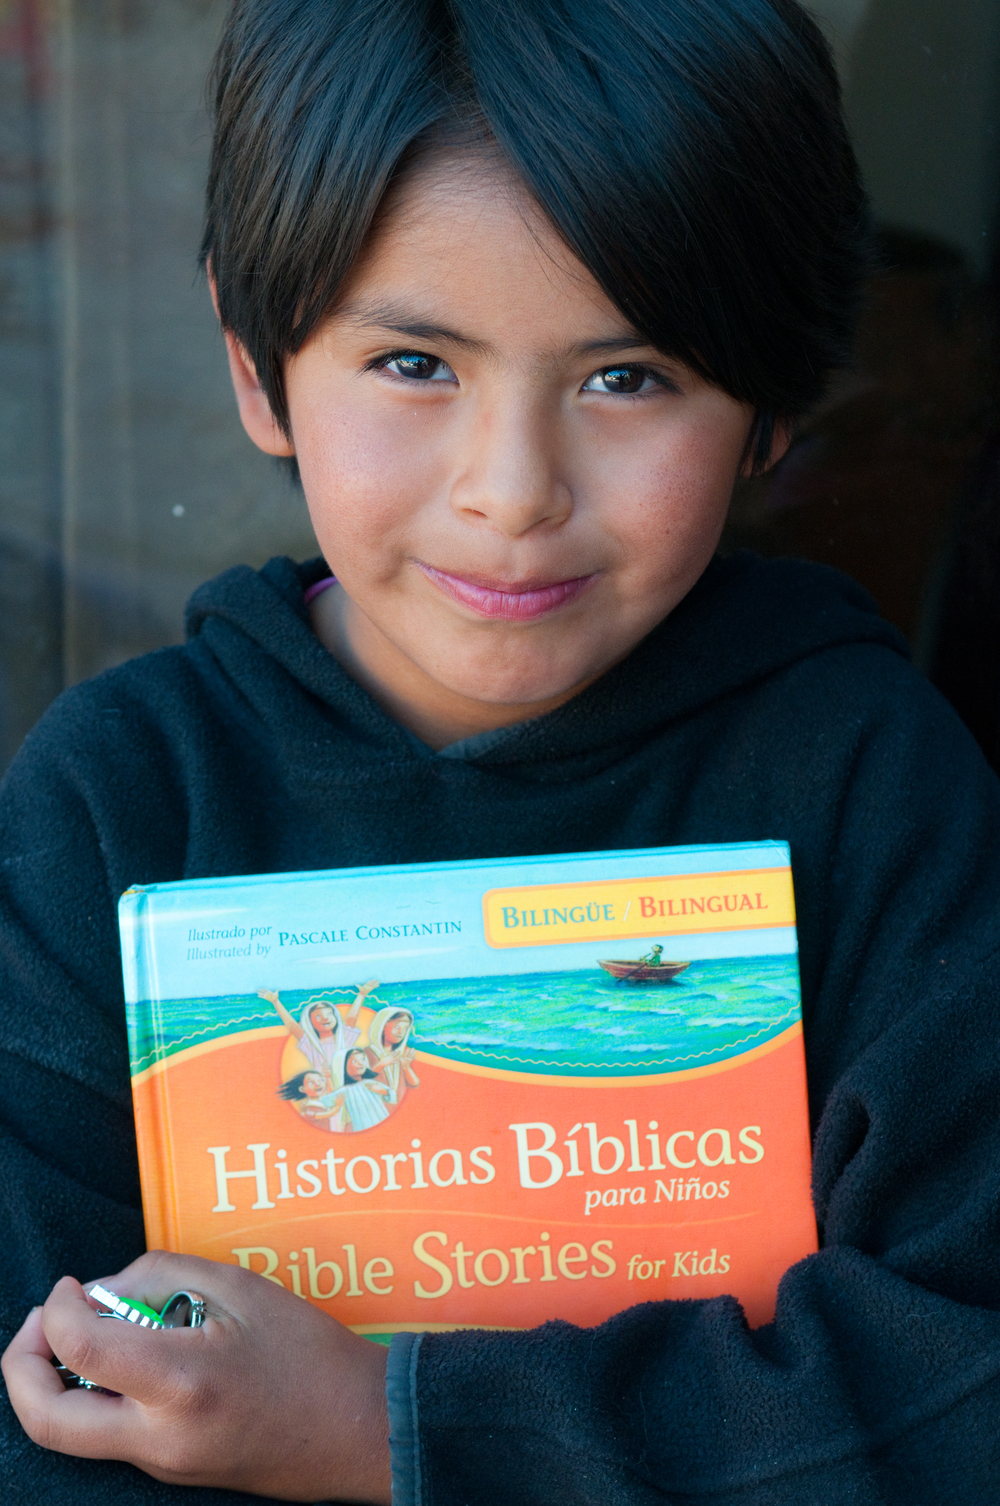 Jasmin and the bilingual Bible stories book.